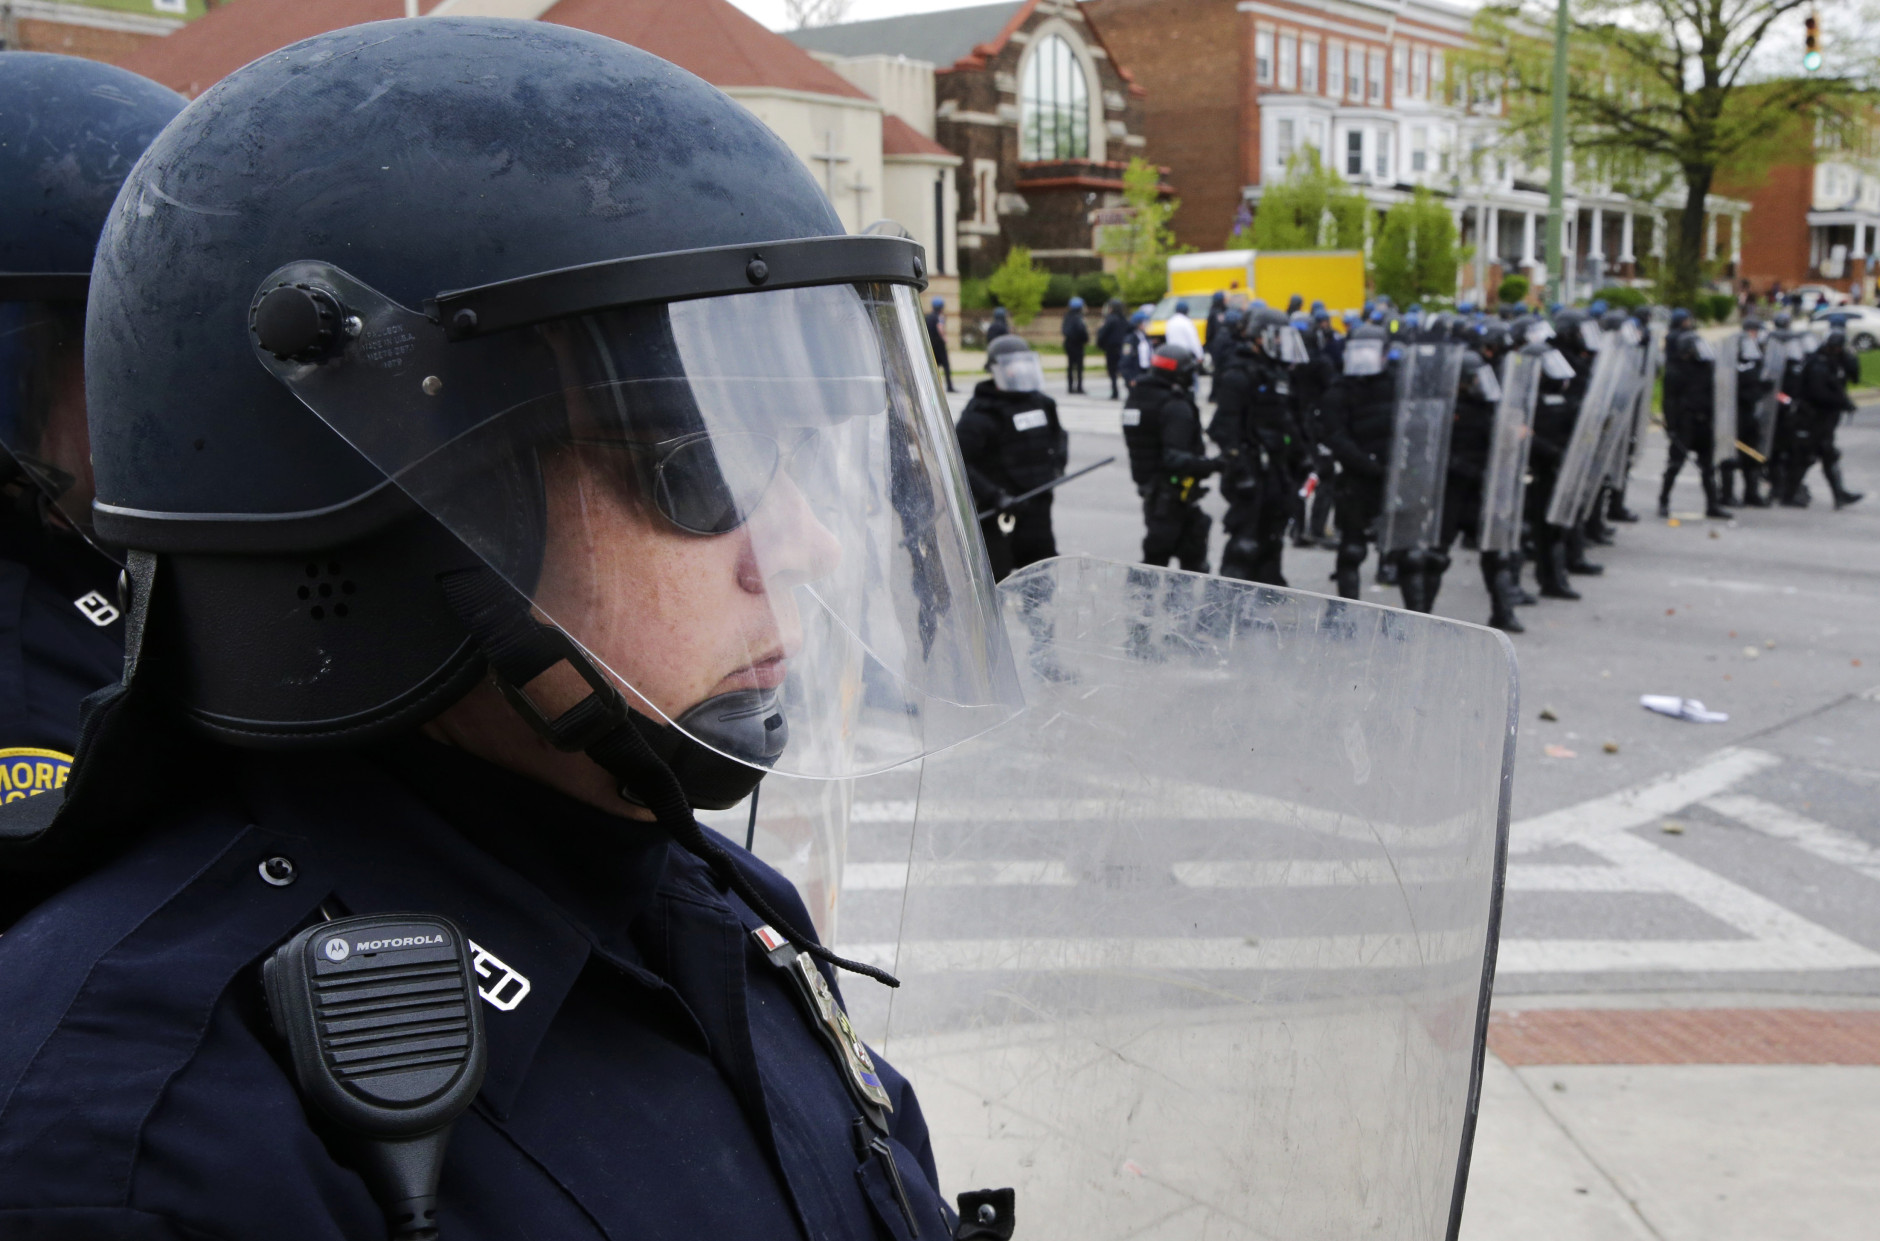 Police stand in formation in response to demonstrators who were throwing objects at police, Monday, April 27, 2015, after the funeral of Freddie Gray in Baltimore. Gray died from spinal injuries about a week after he was arrested and transported in a Baltimore Police Department van. (AP Photo/Patrick Semansky)